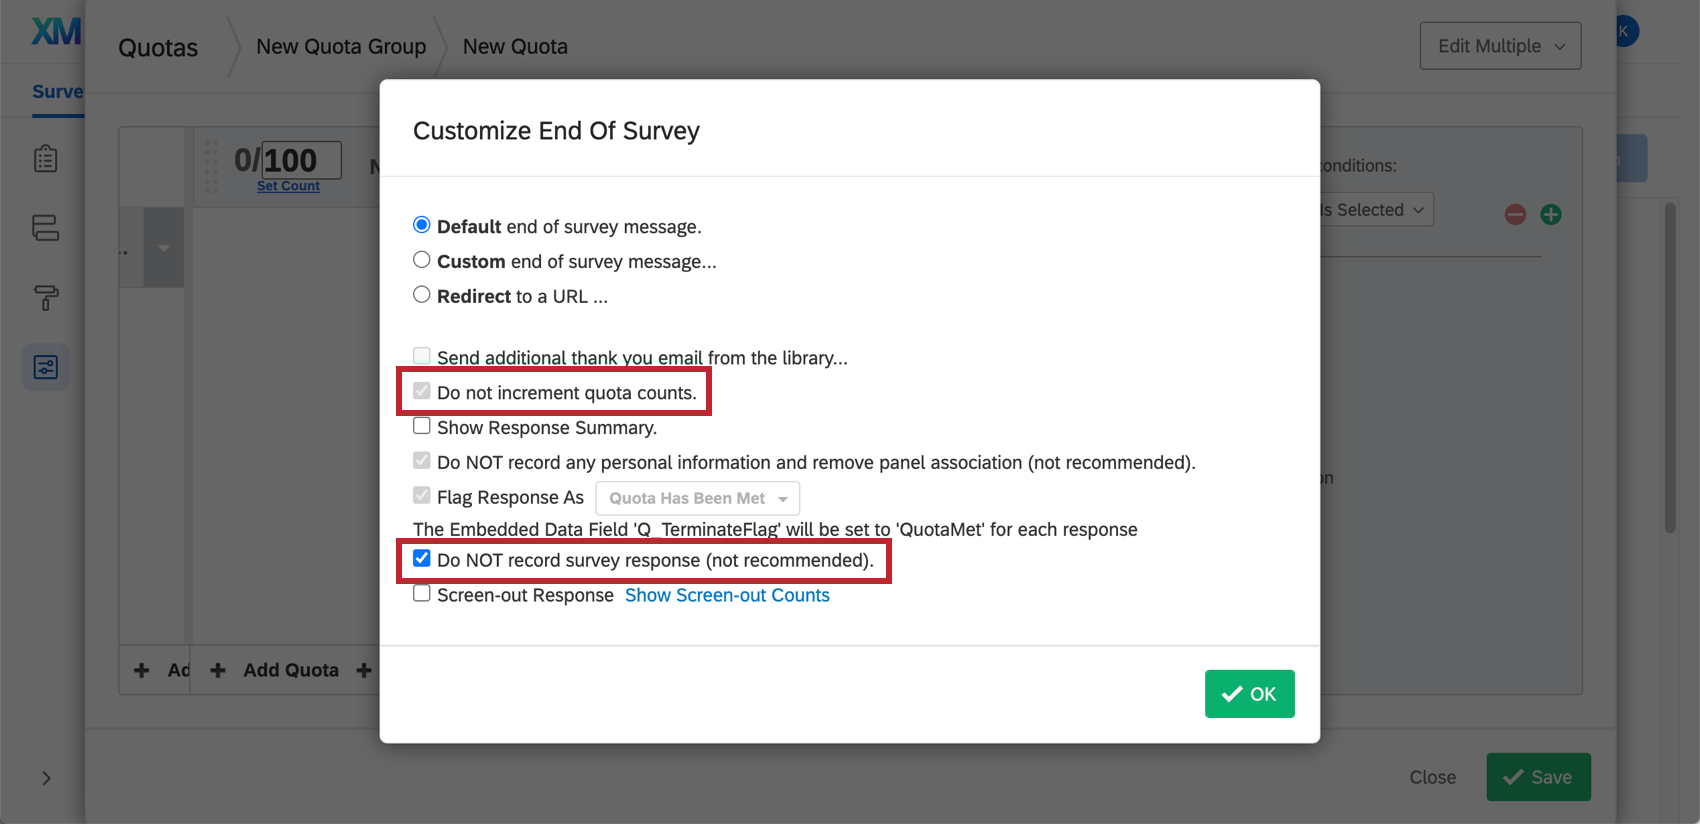 Customize end of Survey window appears